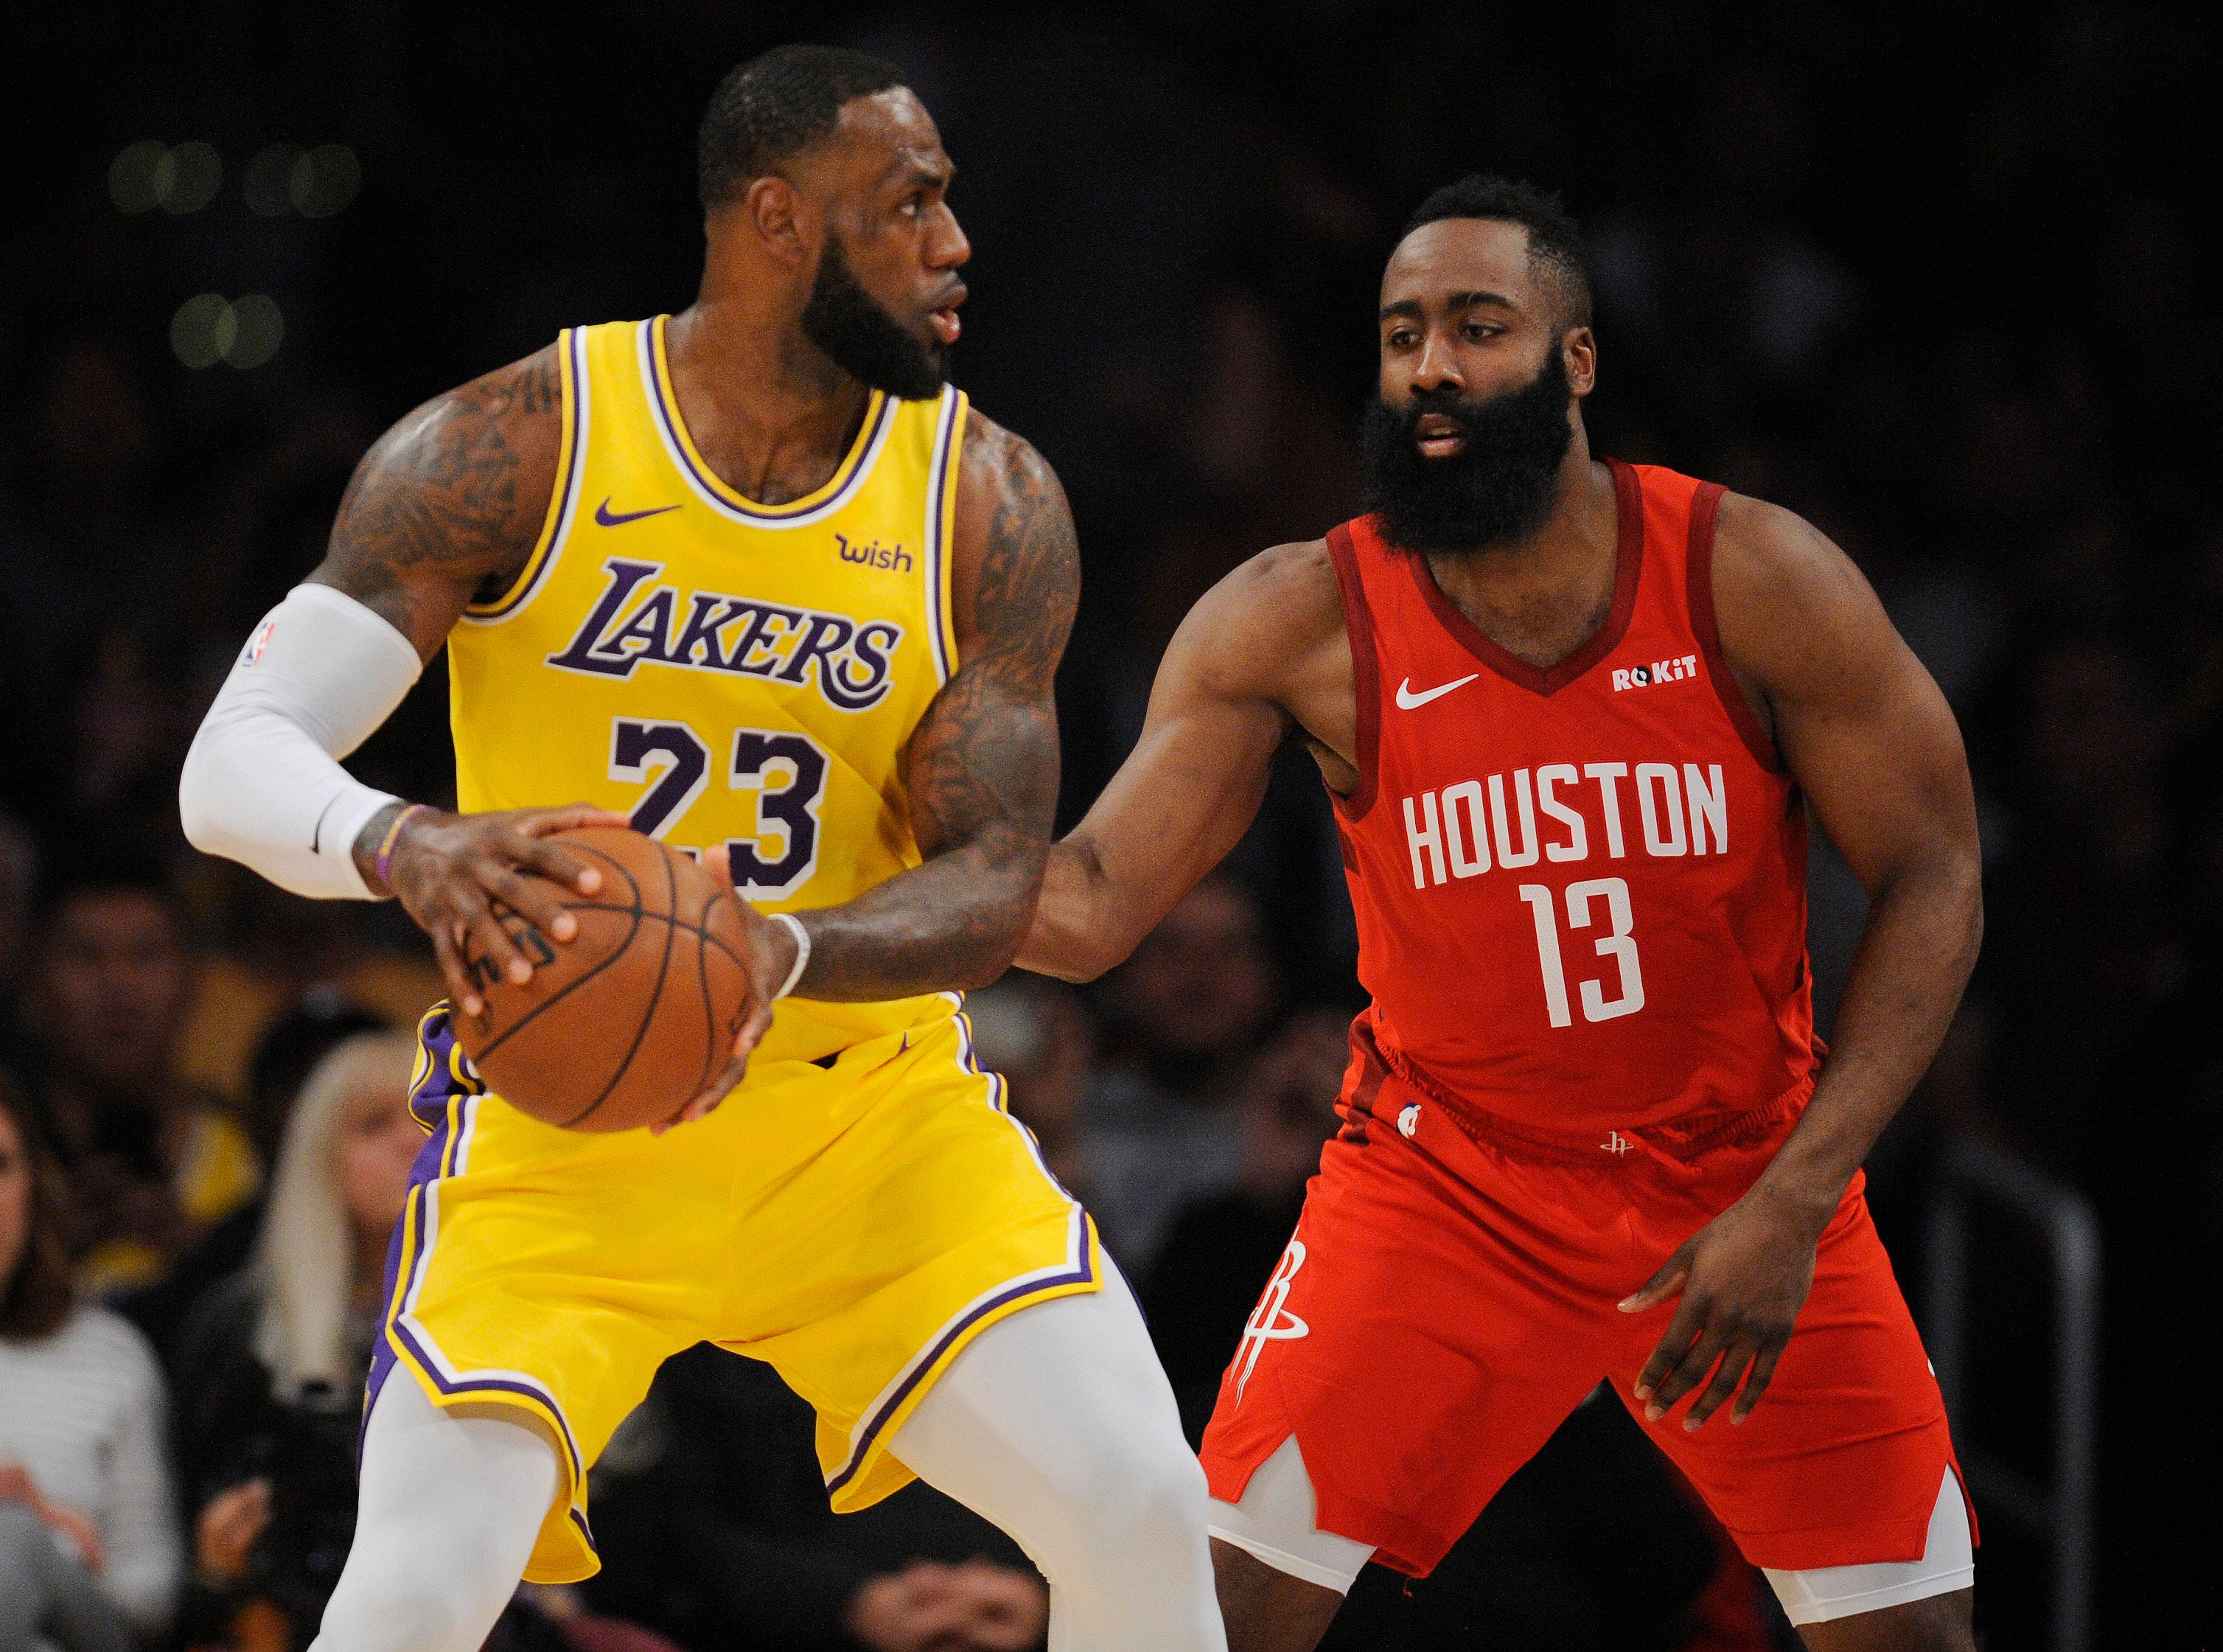 LeBron James scored 29 points in the Lakers' win against Houston.